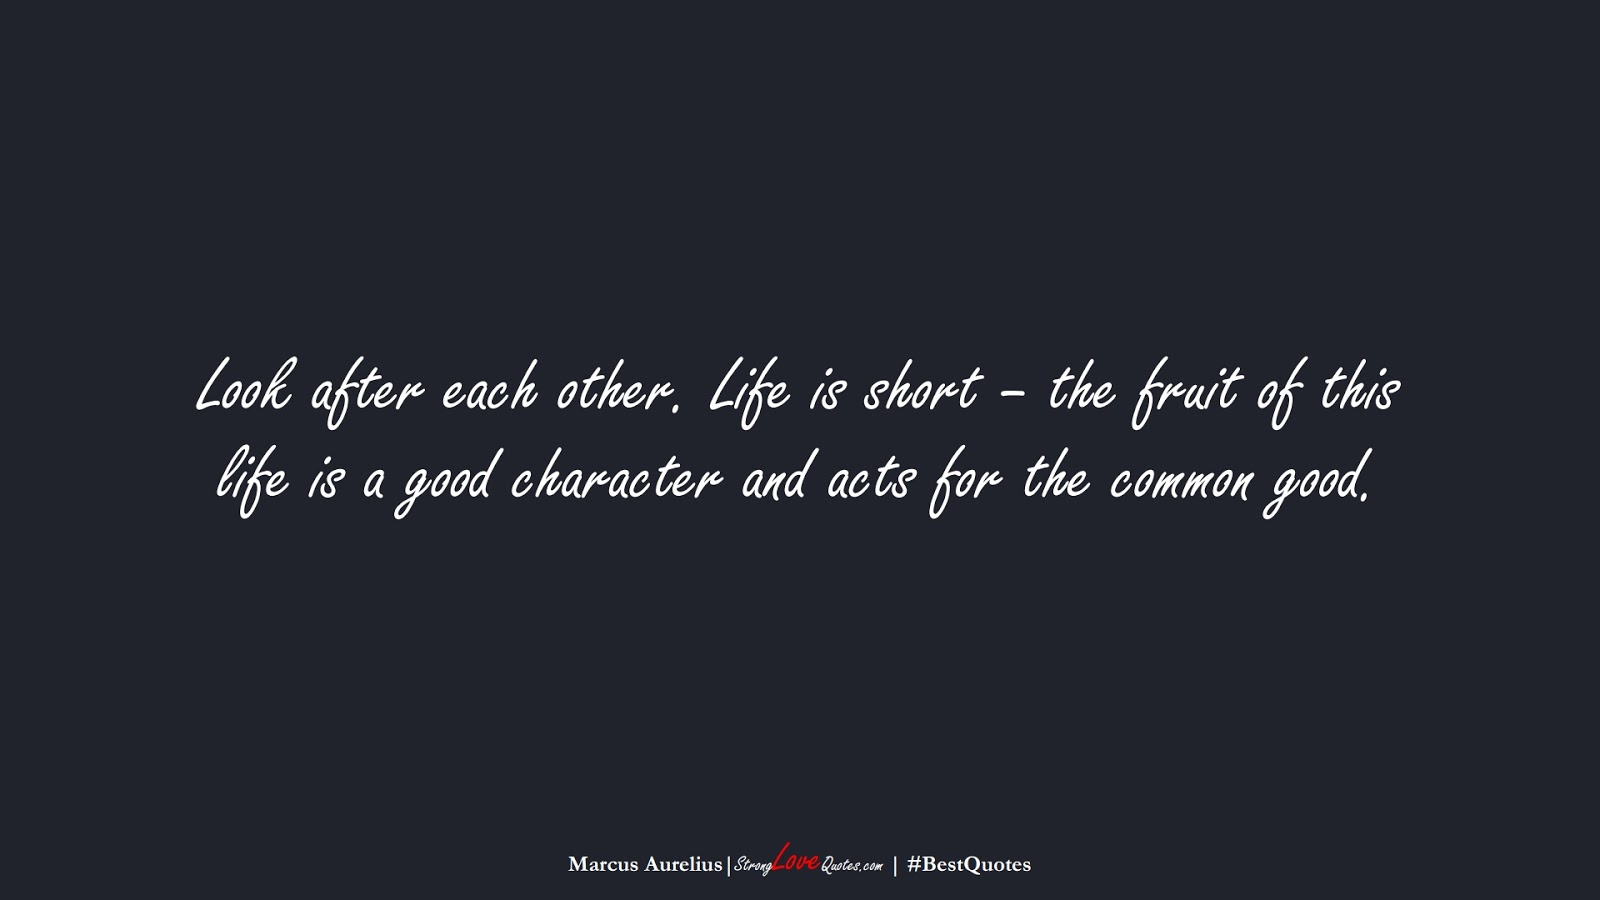 Look after each other. Life is short – the fruit of this life is a good character and acts for the common good. (Marcus Aurelius);  #BestQuotes